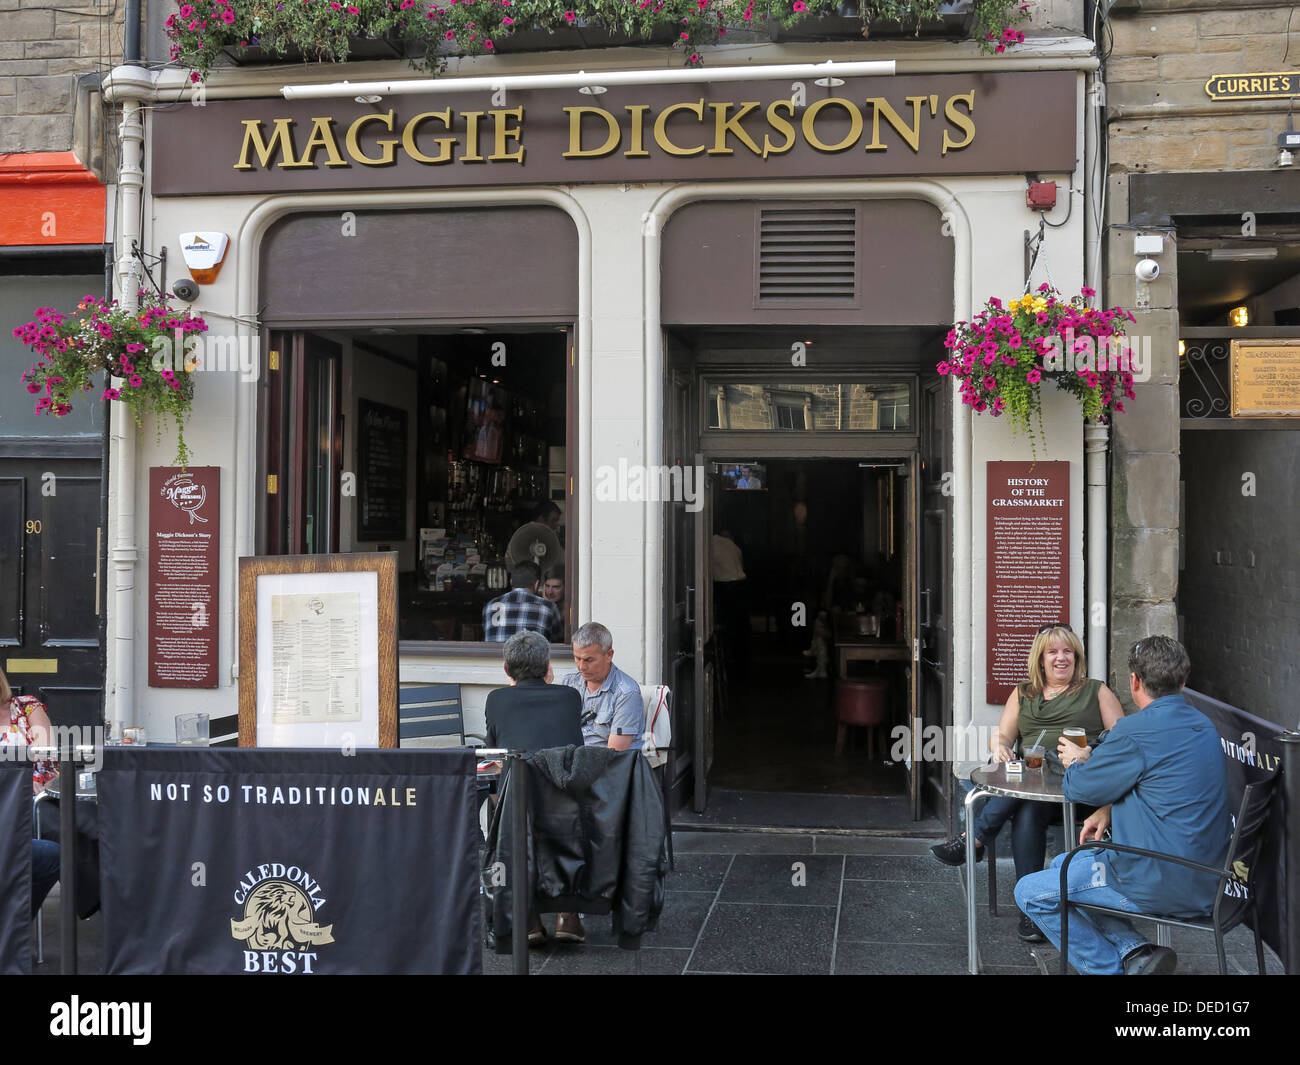 Maggie Dicksons pub, Grassmarket, Edinburgh,Scotland,UK - Stock Image